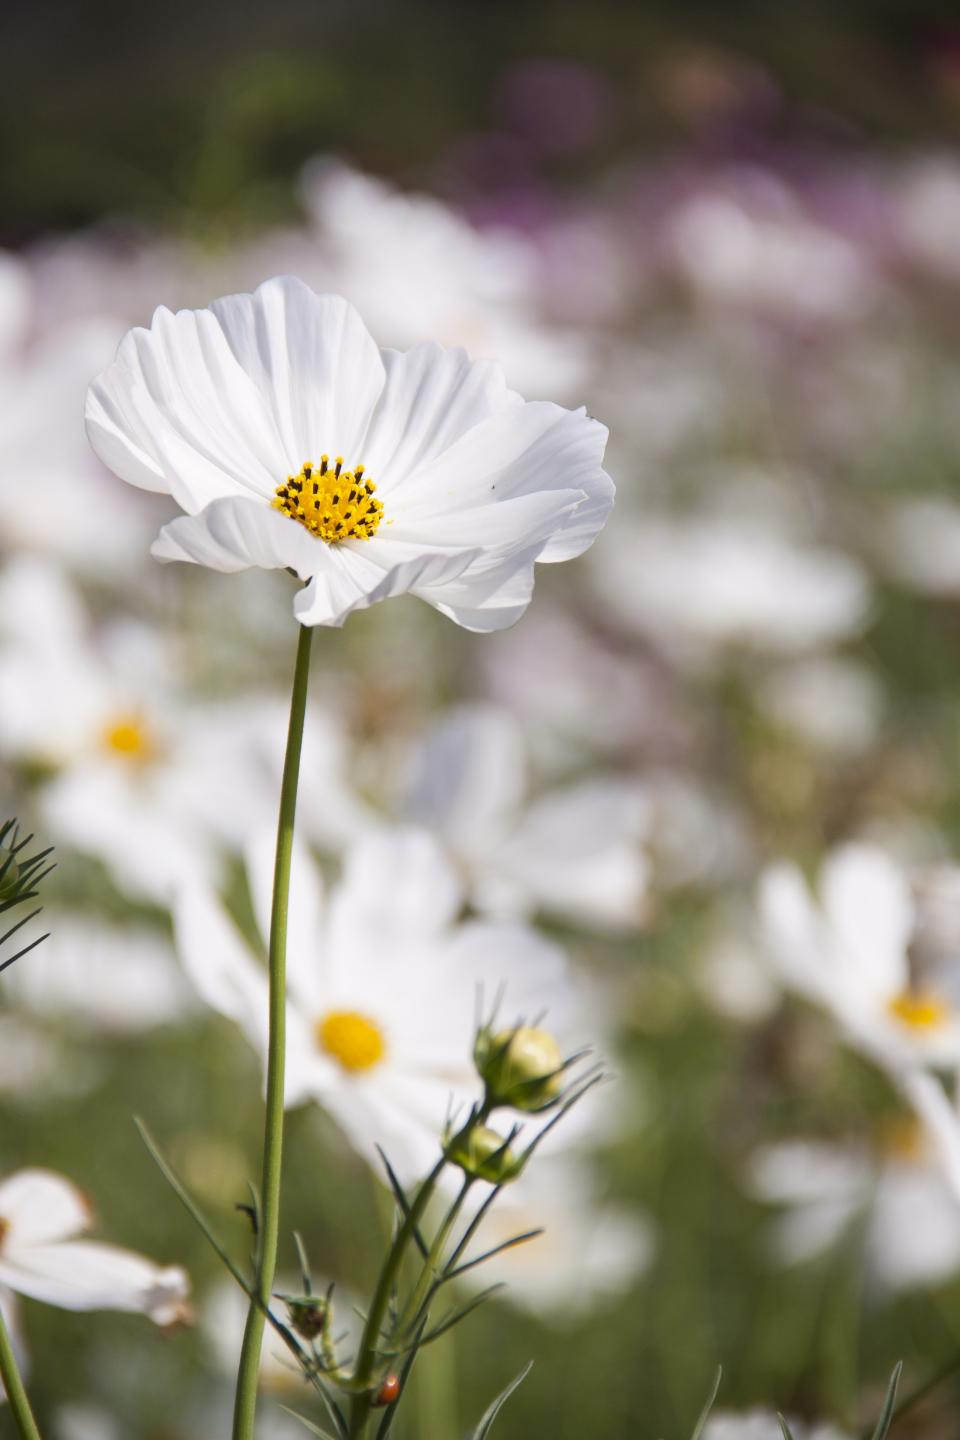 flowers, nature, blossoms, field, bed, white, stems, stalks, branches, petals, leaves, outdoors, still, bokeh